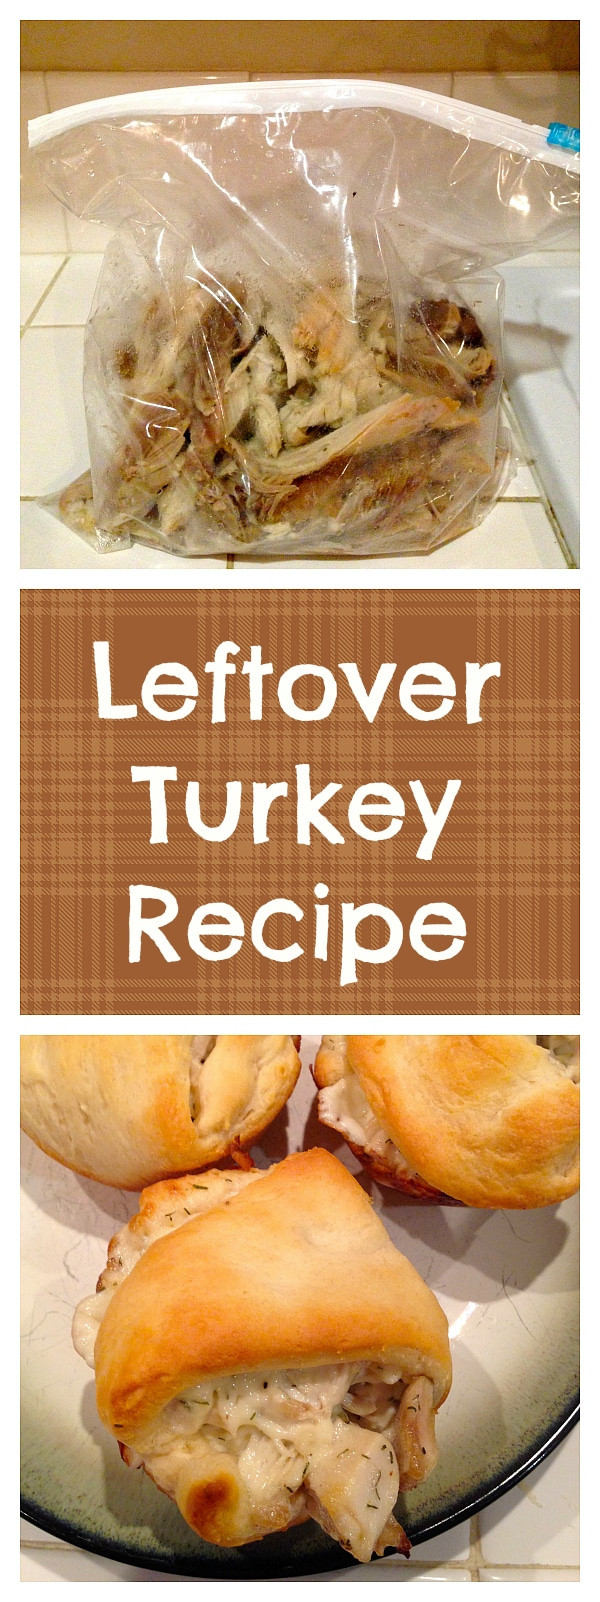 Leftover Thanksgiving Turkey  Best Leftover Turkey Recipe · The Typical Mom